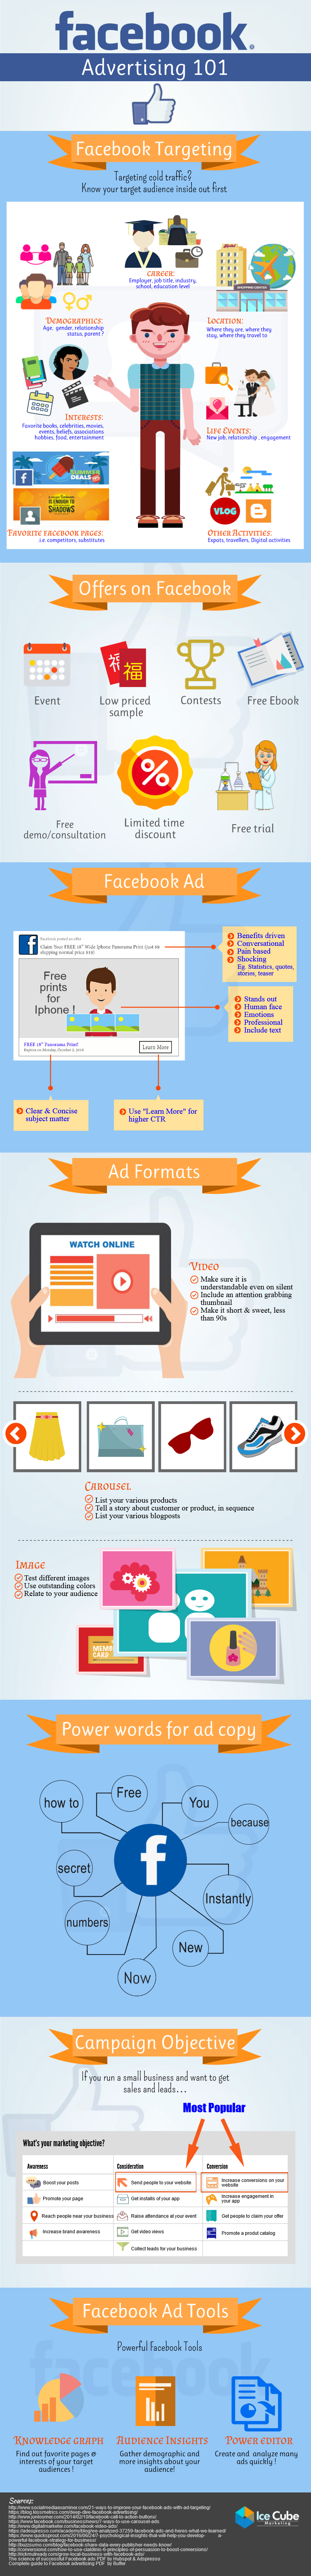 How to Create Stand-Out-In-The-Crowd Facebook Advertising - Infographic